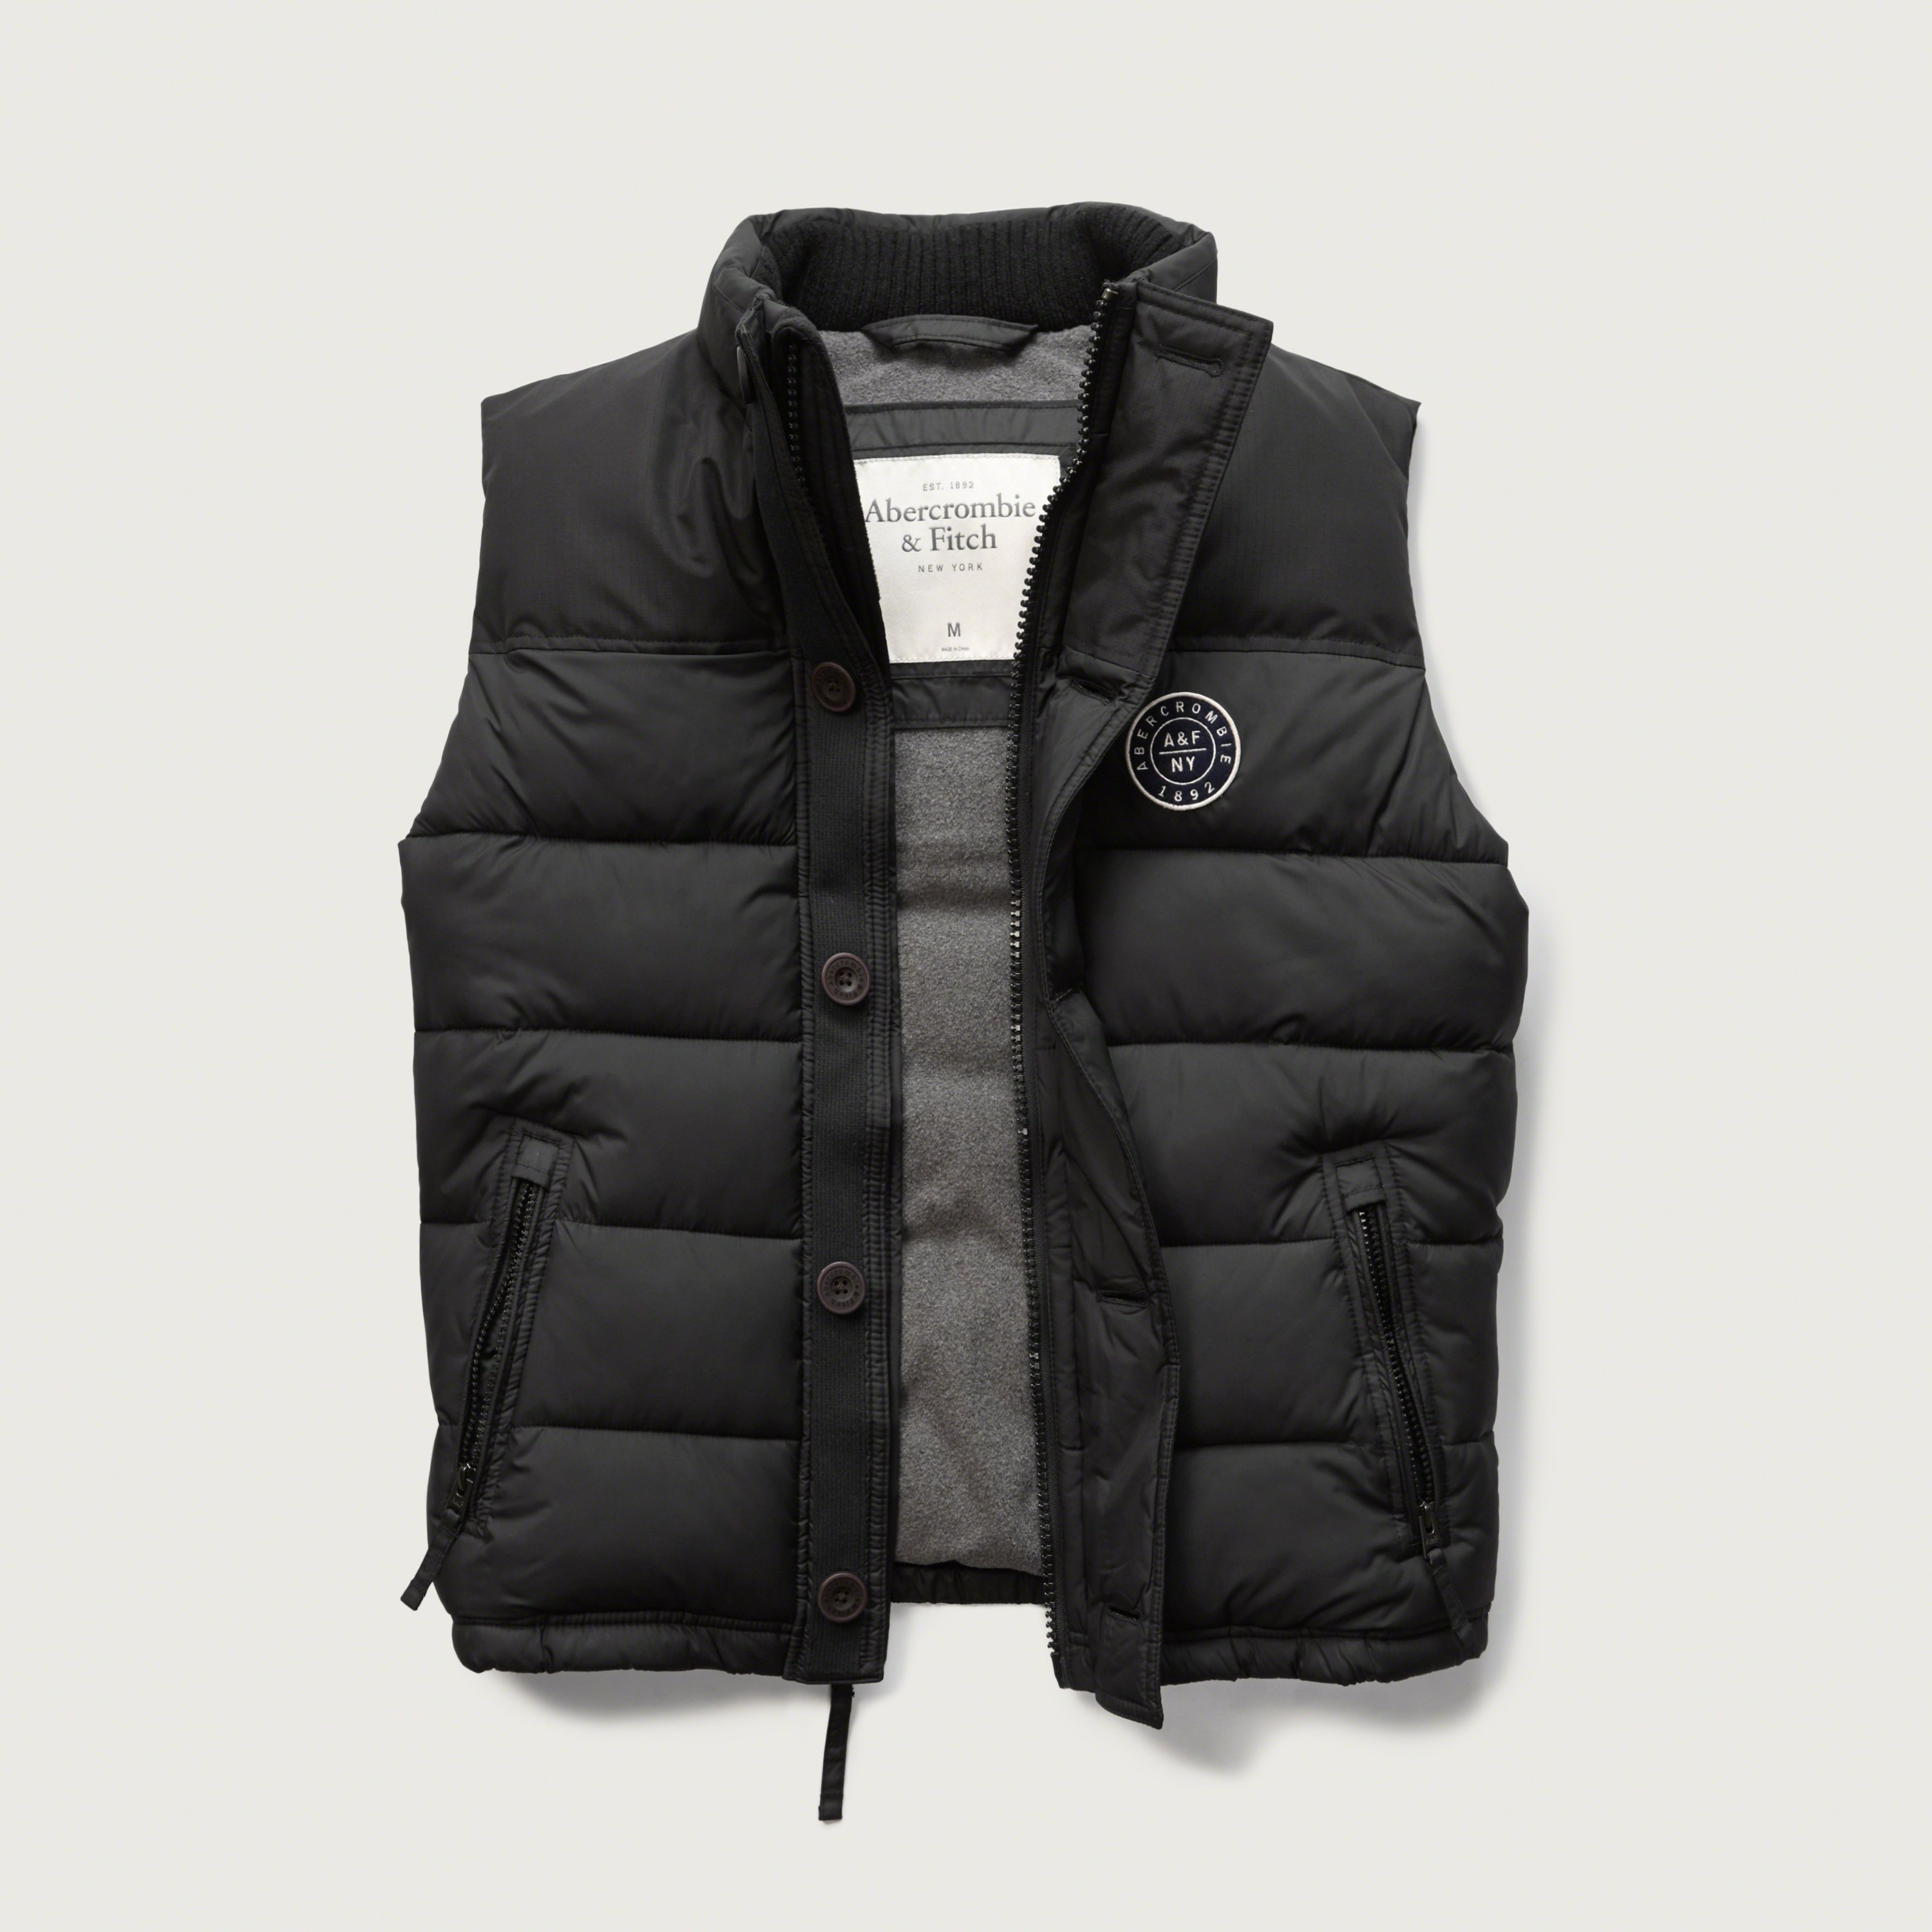 Abercrombie Amp Fitch A Amp F Puffer Vest In Black For Men Lyst